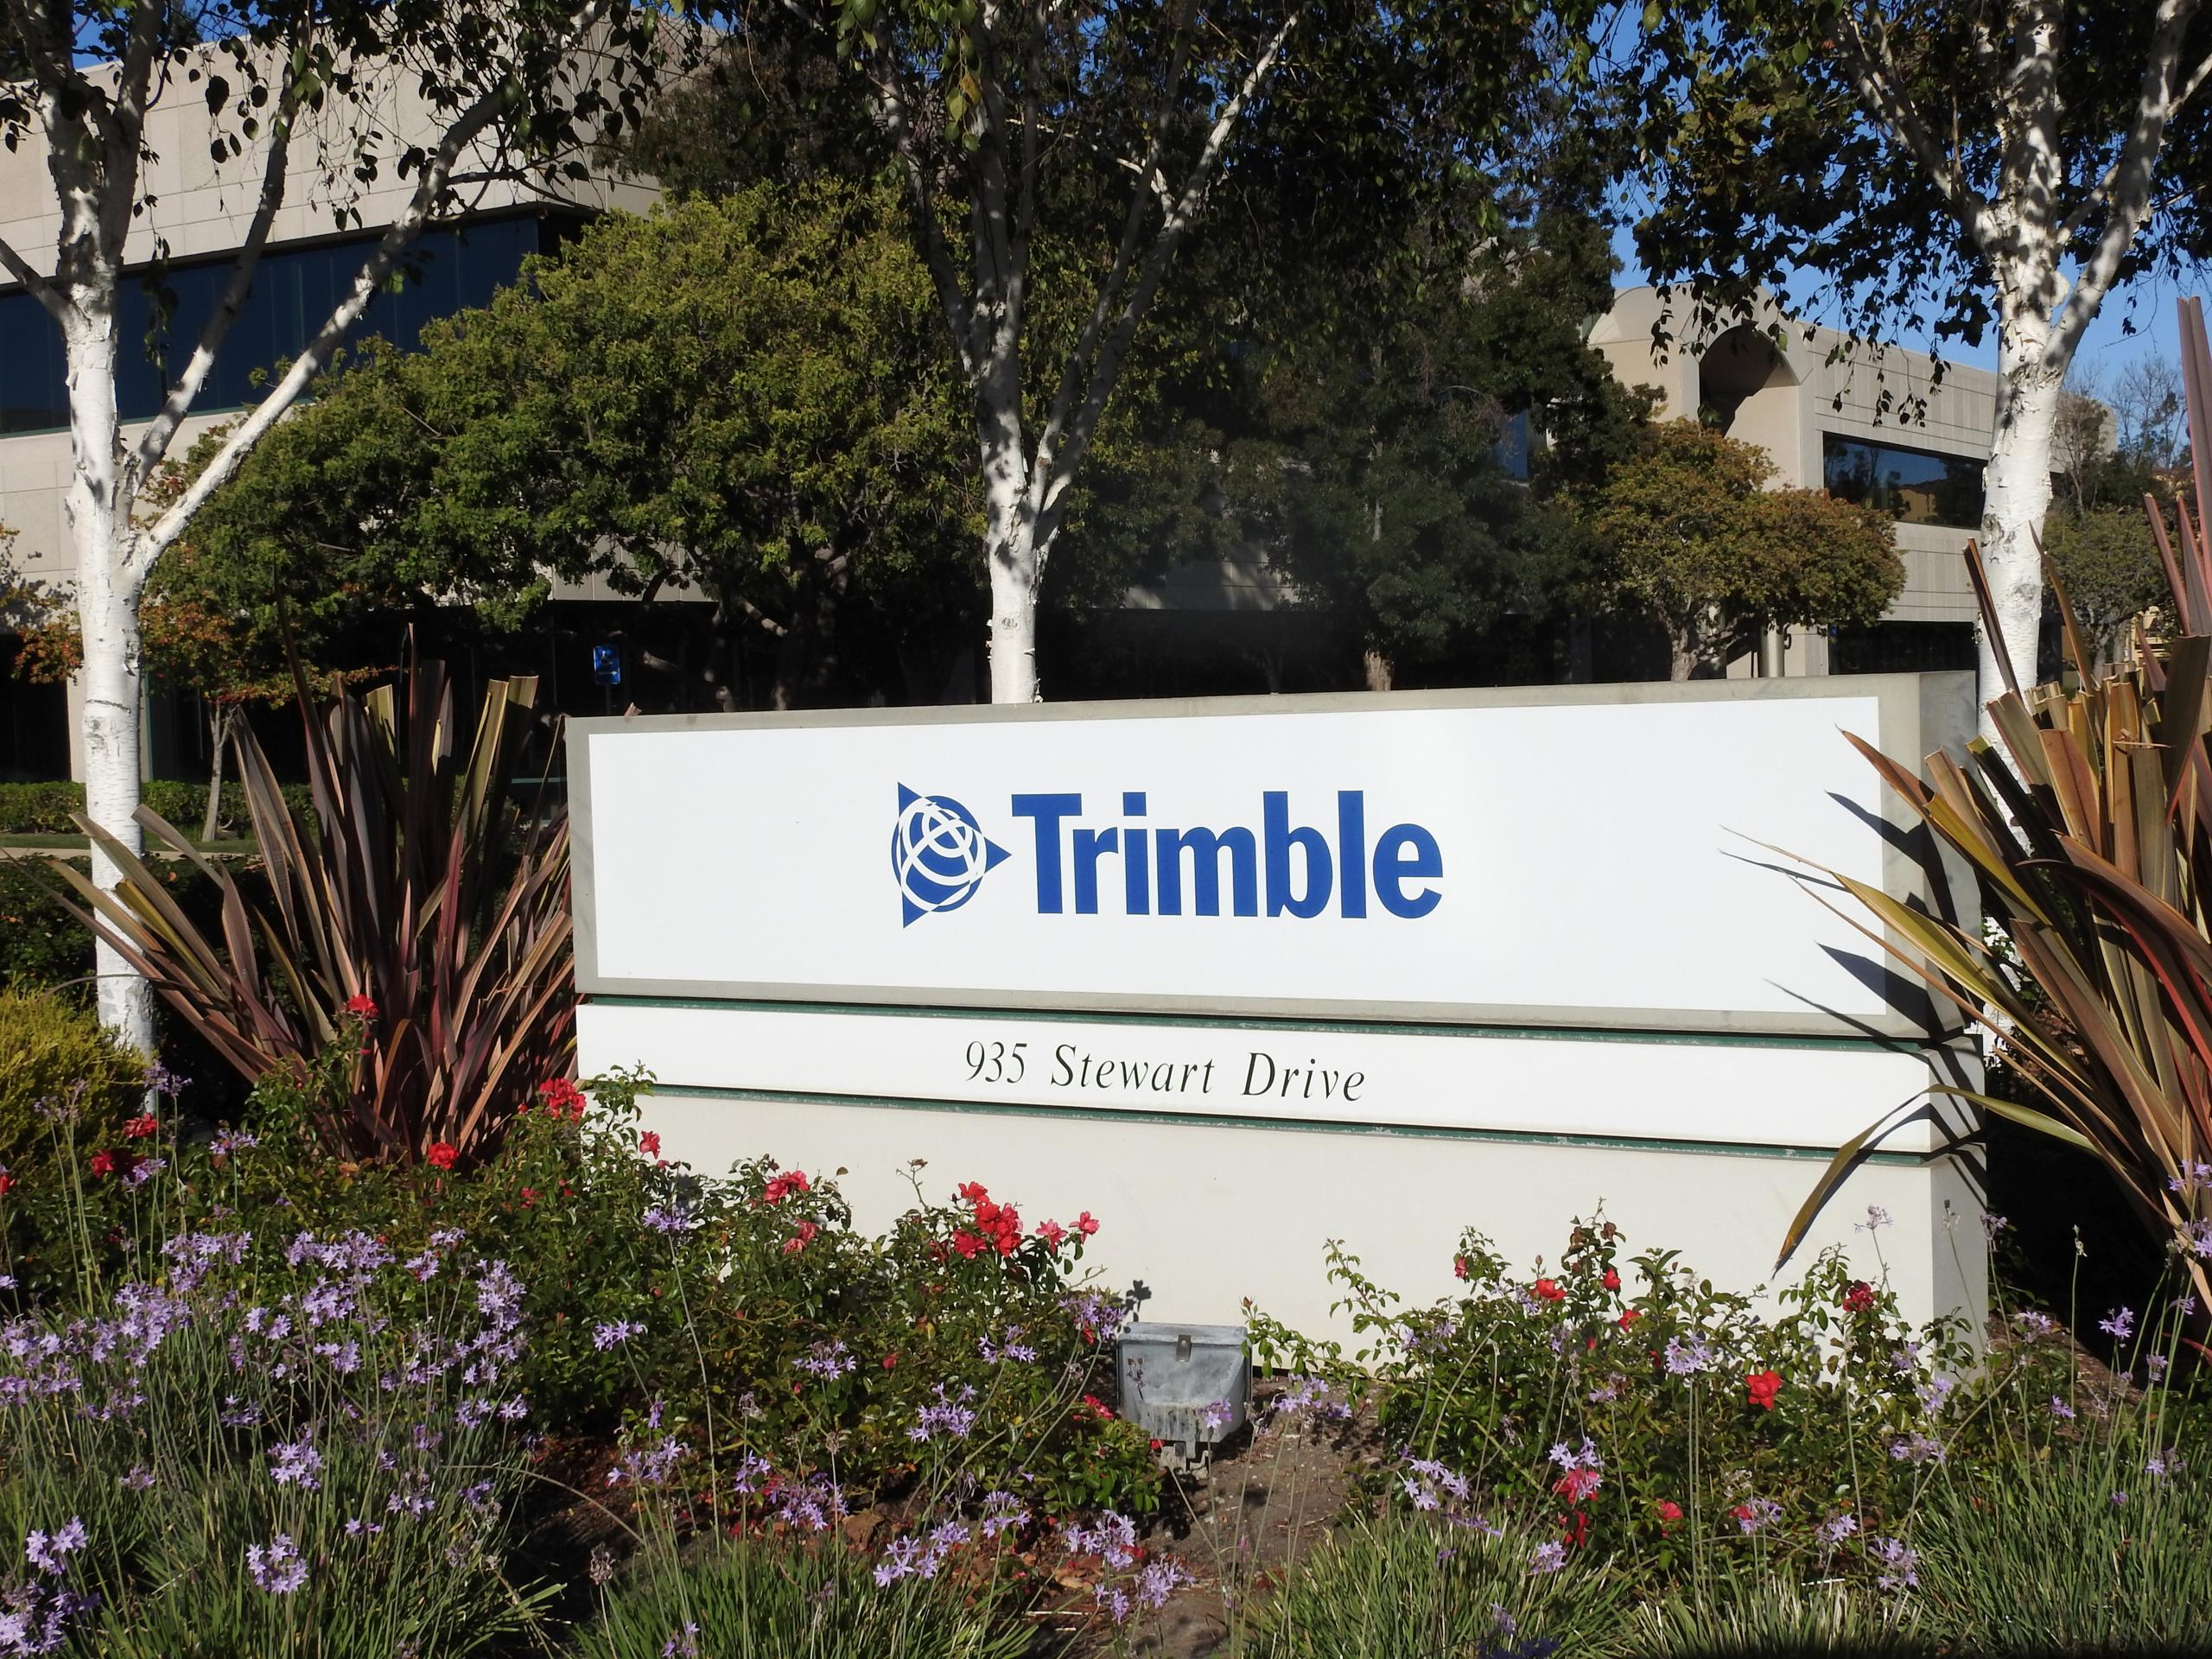 Entrance to Trimble Navigation's corporate headquarters in Sunnyvale, California.